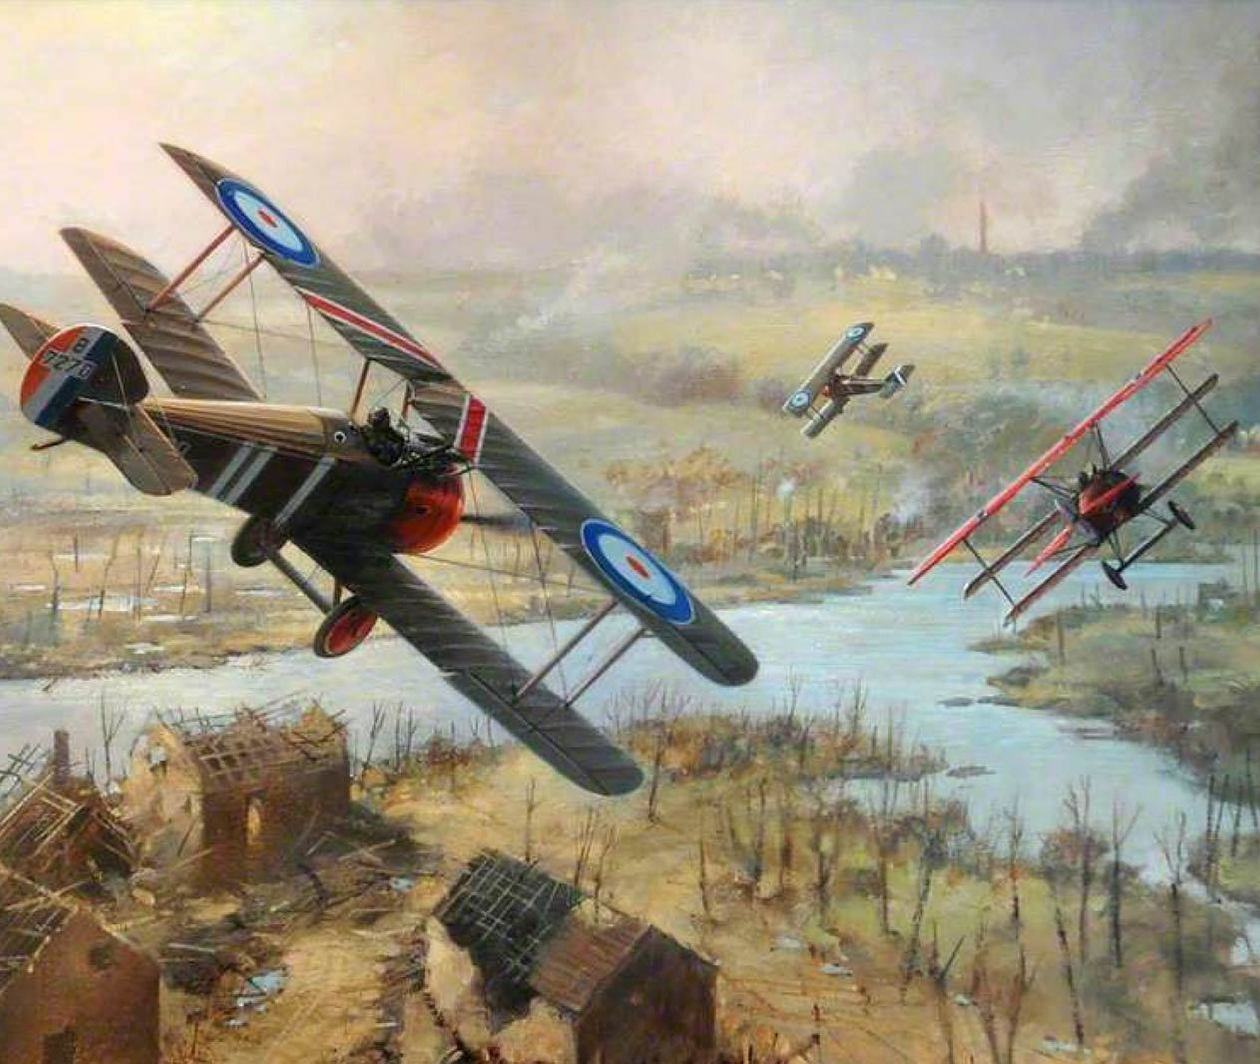 World War 1: Aviation Comes of Age